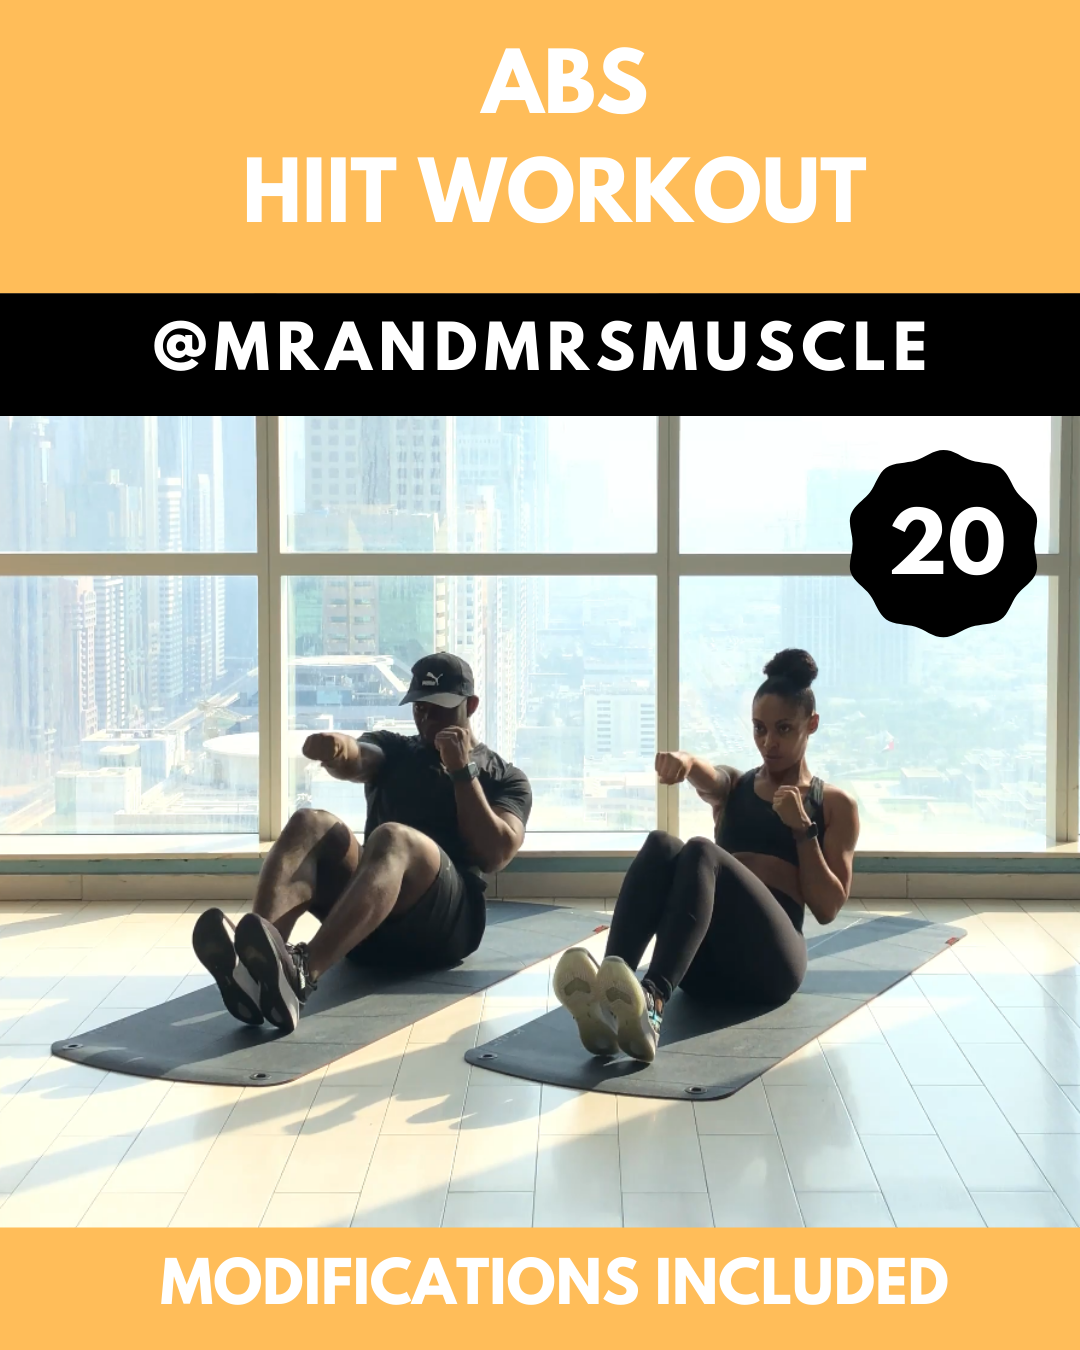 Try this 10 minute Abs amp; Core Workout with LOW IMPACT modifications. Get ready to sweat buckets!!...